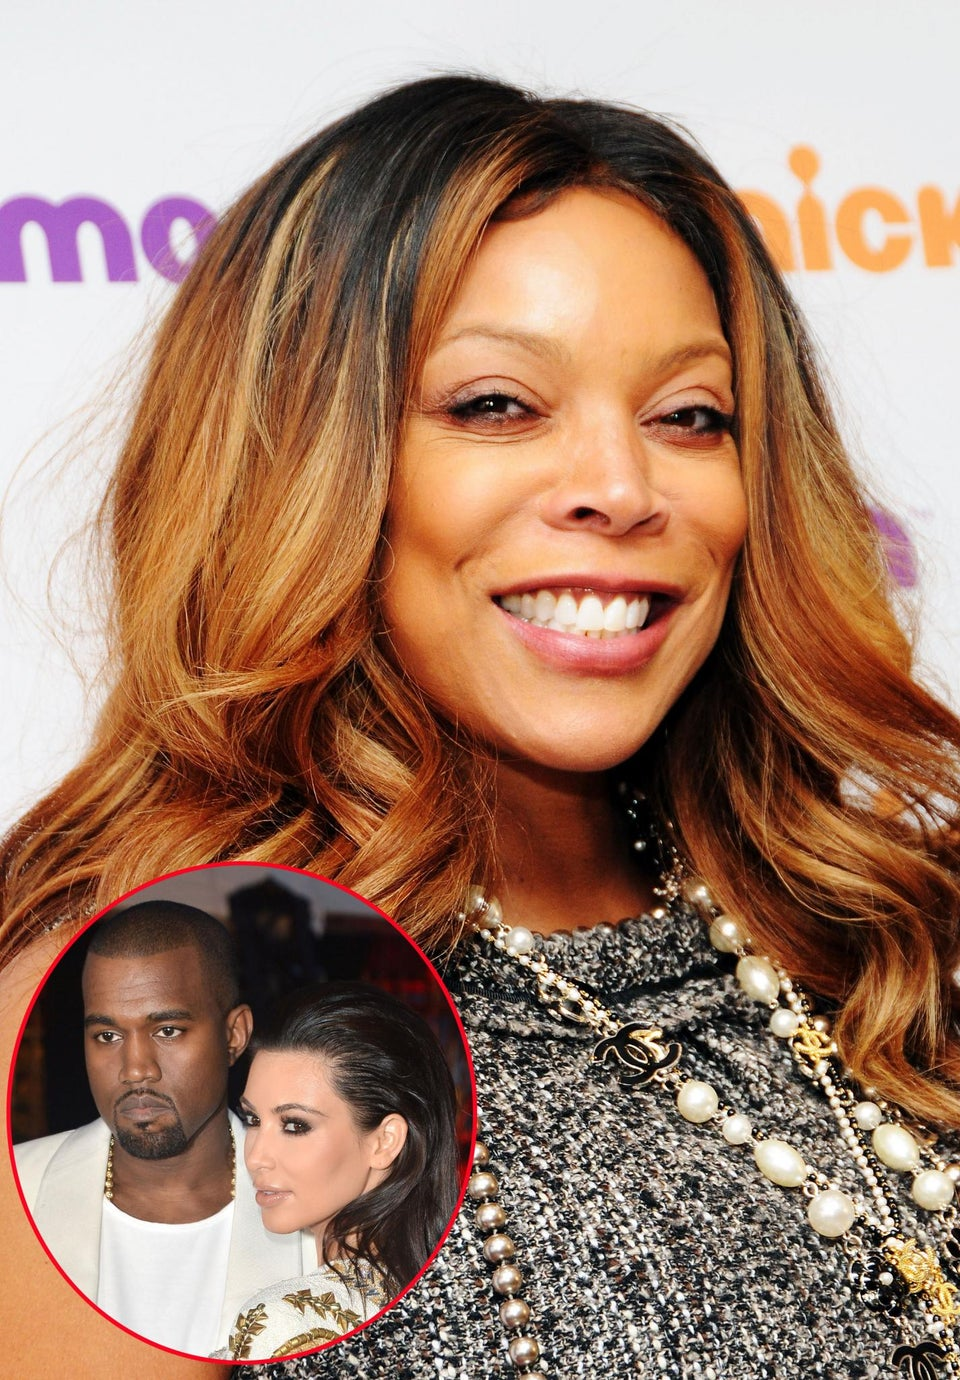 Wendy Williams to Eat Crow If Kanye West Stays Married 73 Days